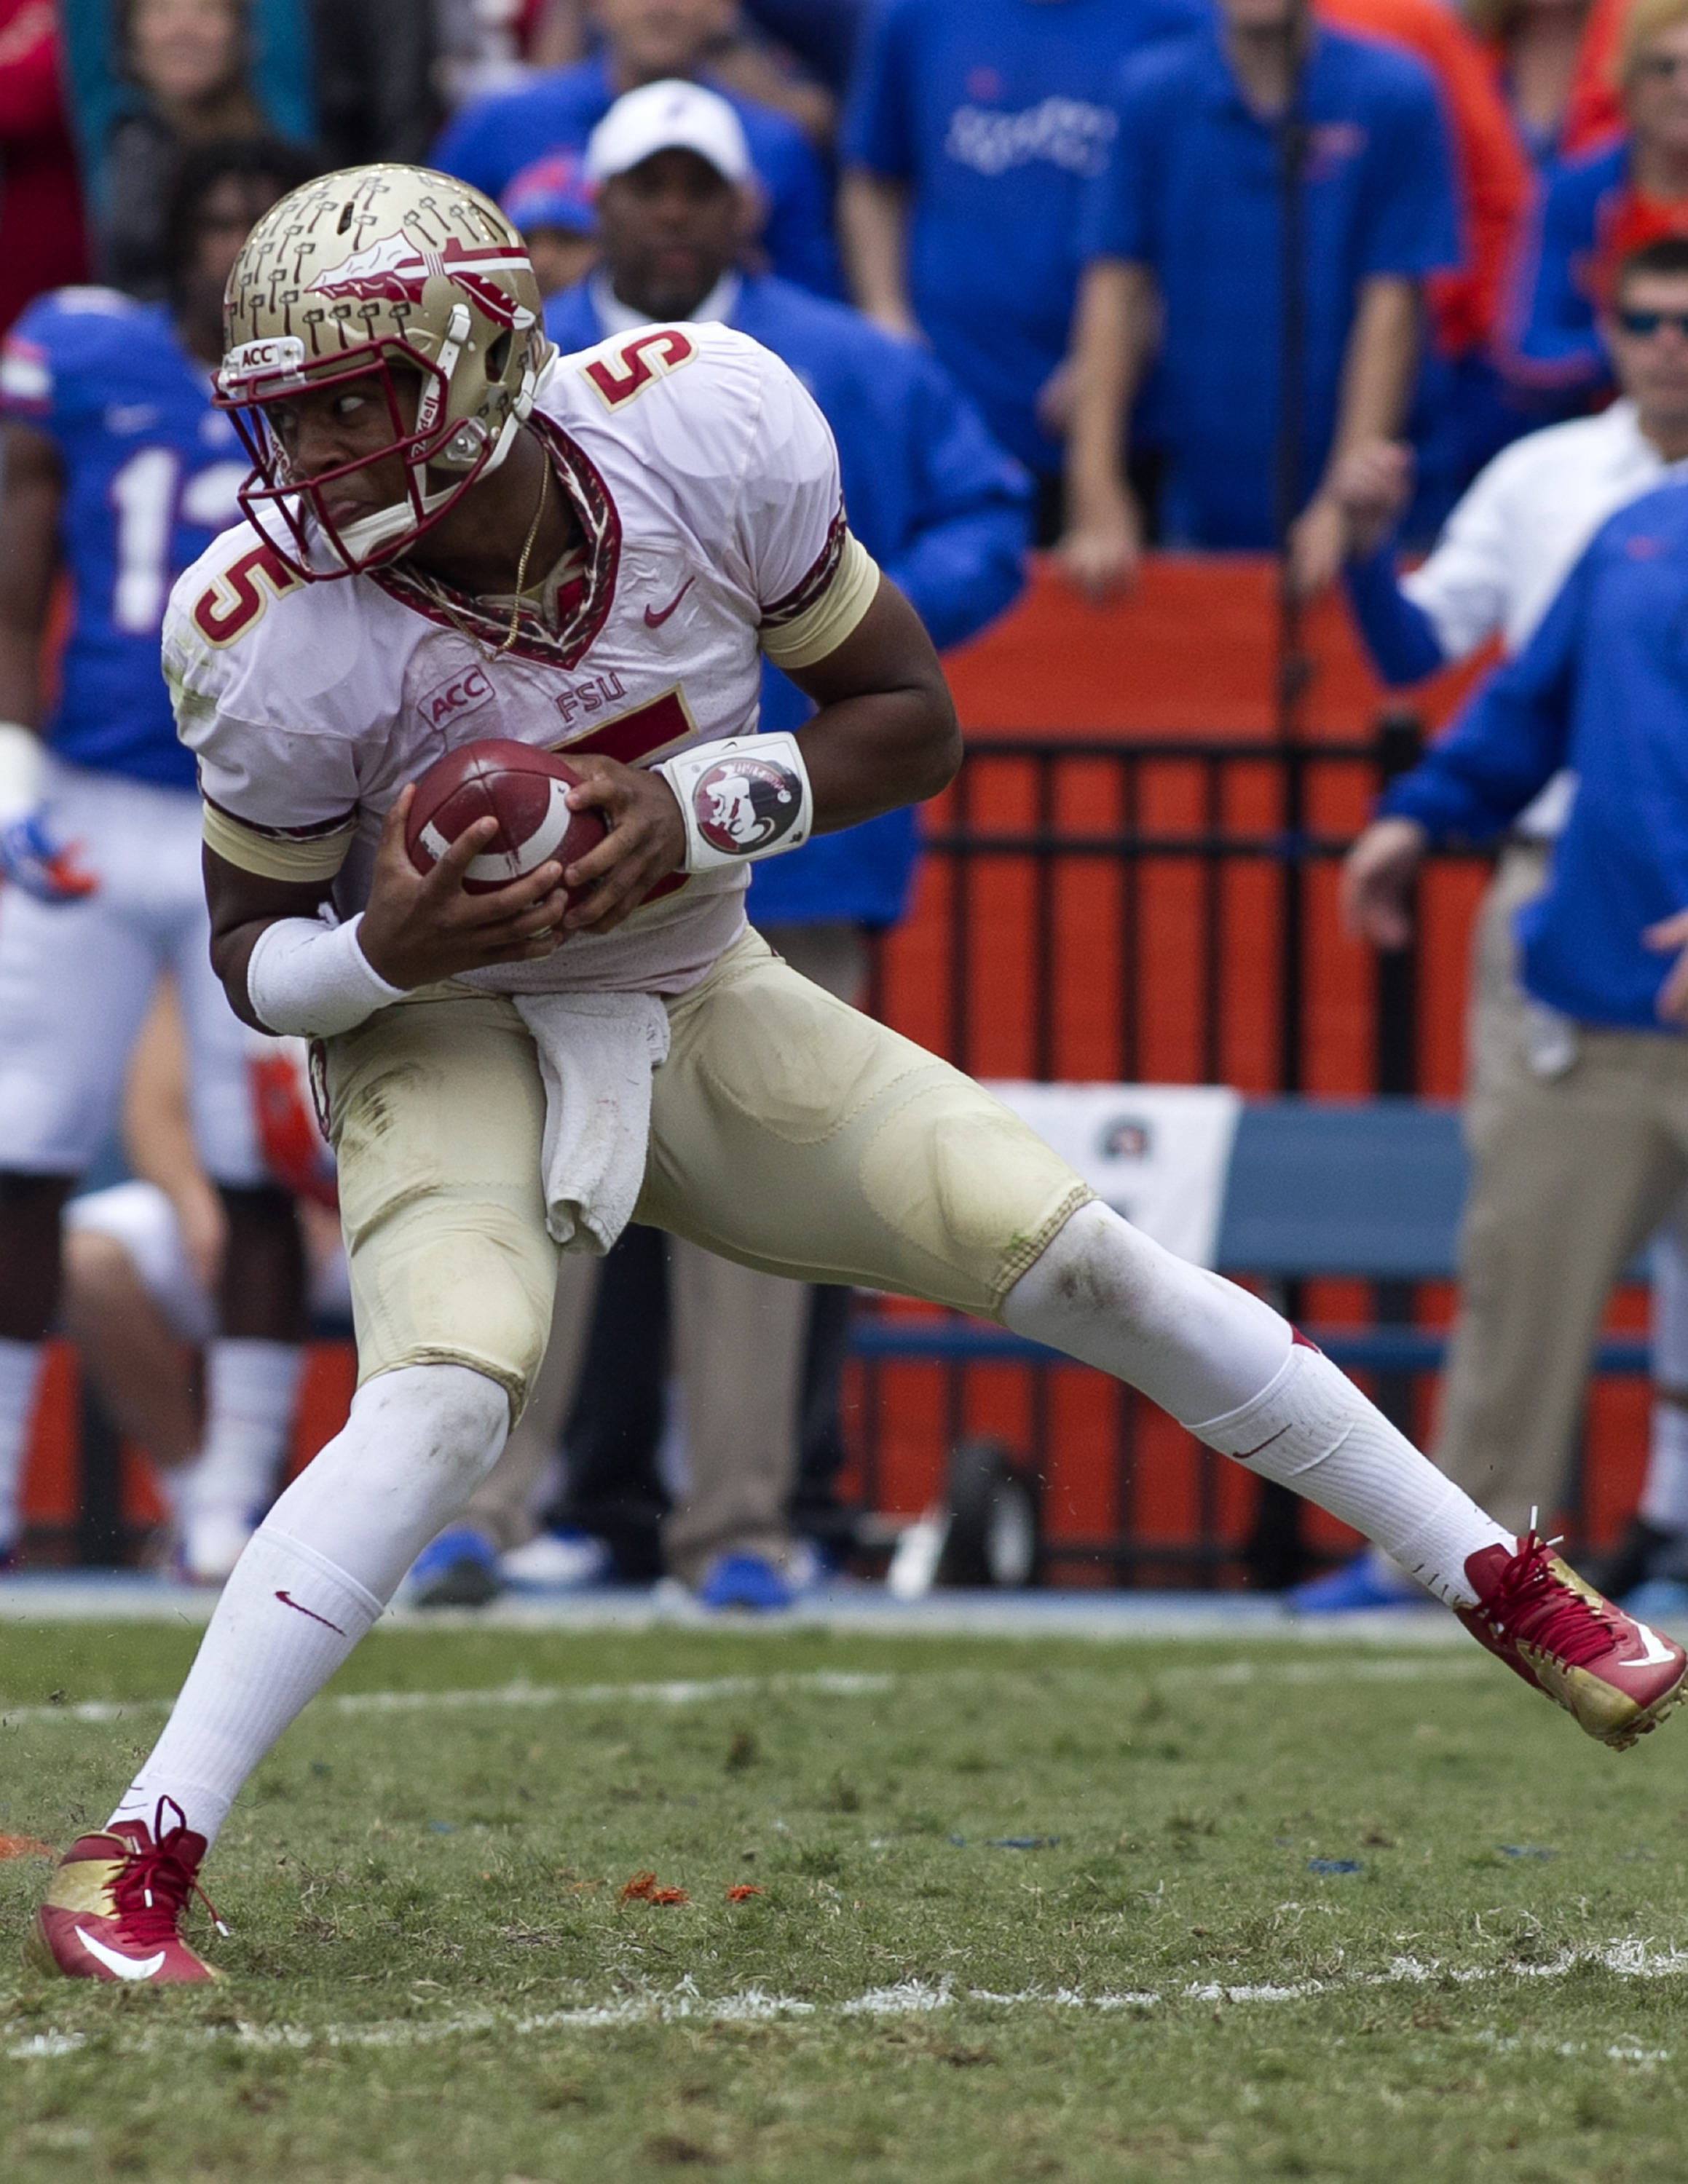 Jameis Winston (5) with a scramble, FSU vs Florida, 11-30-13,  (Photo by Steve Musco)